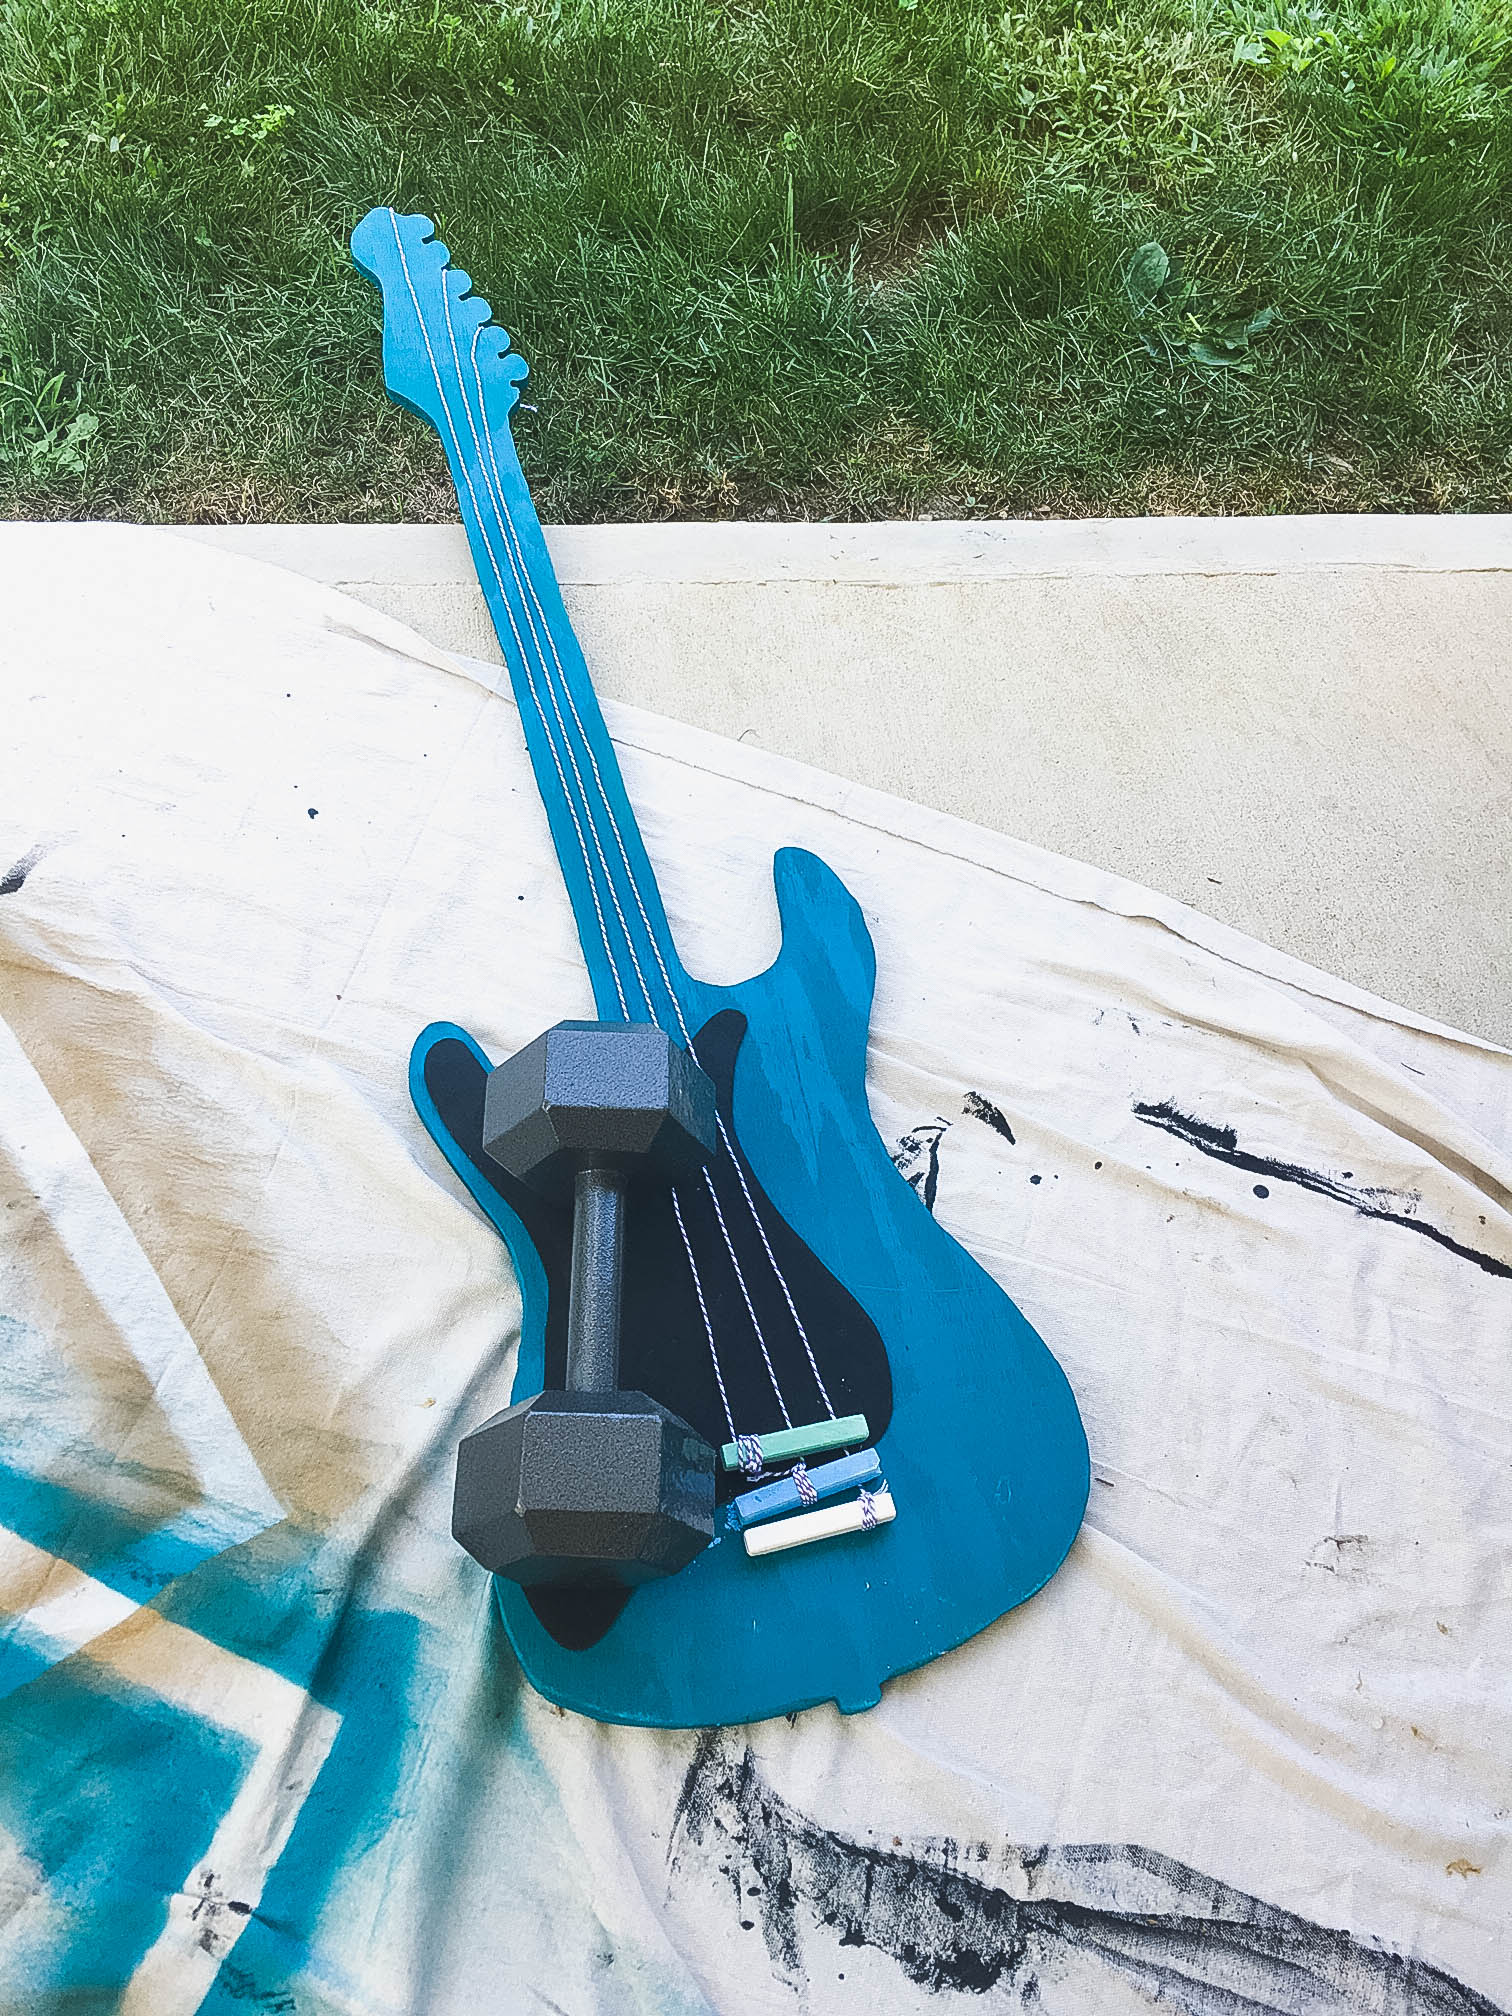 diy-guitar-shaped-chalkboard-with-attached-chalk-6